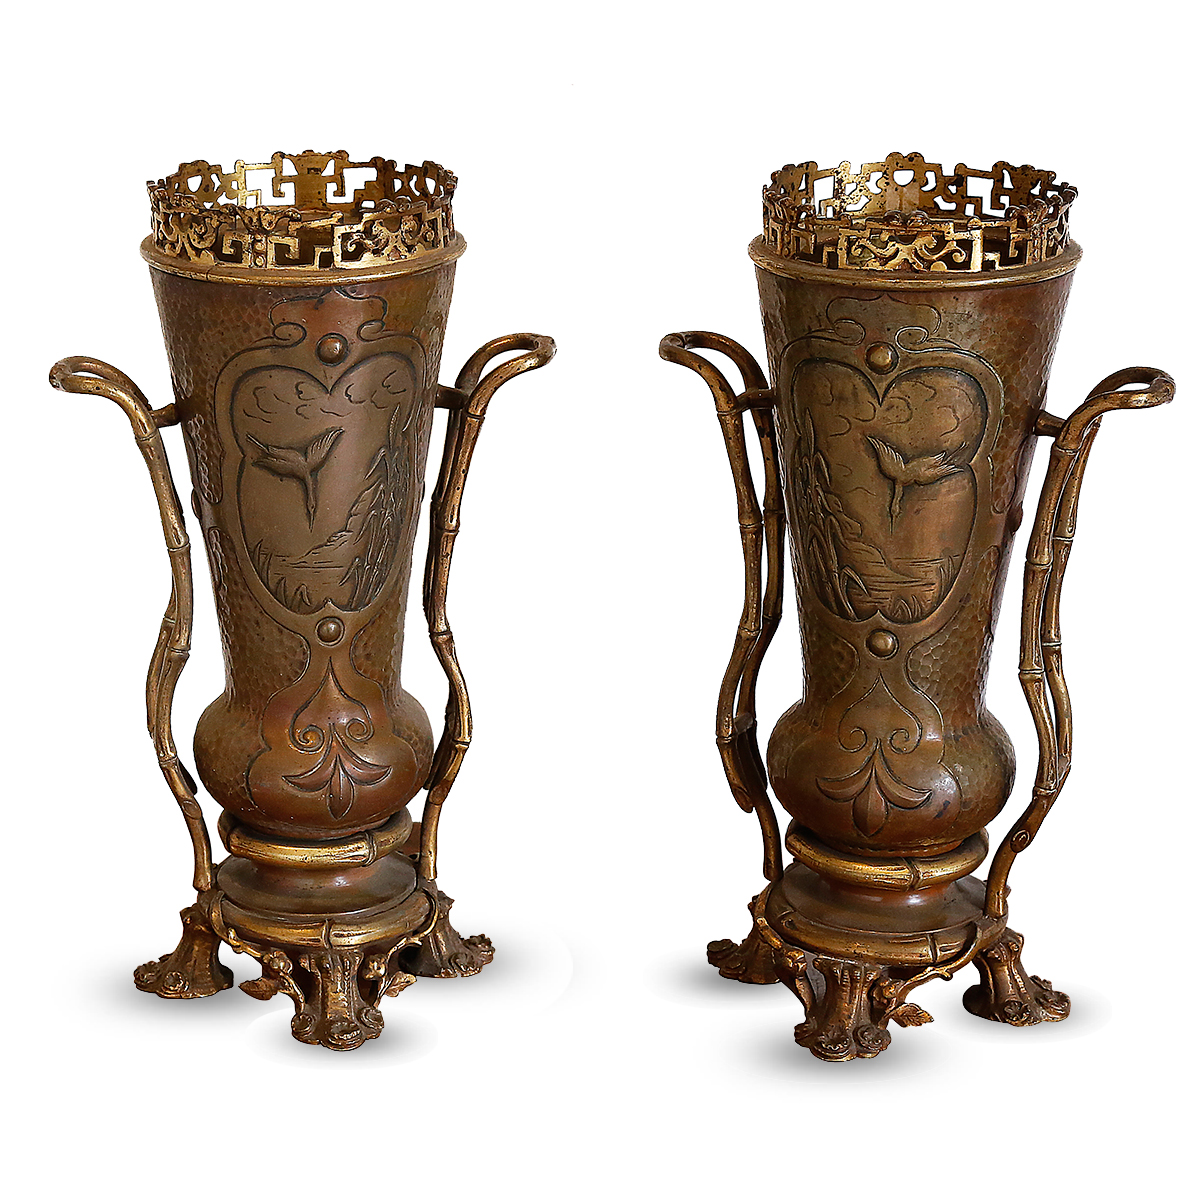 A Pair Of Bronze Vases In A Japanese-inspired Style